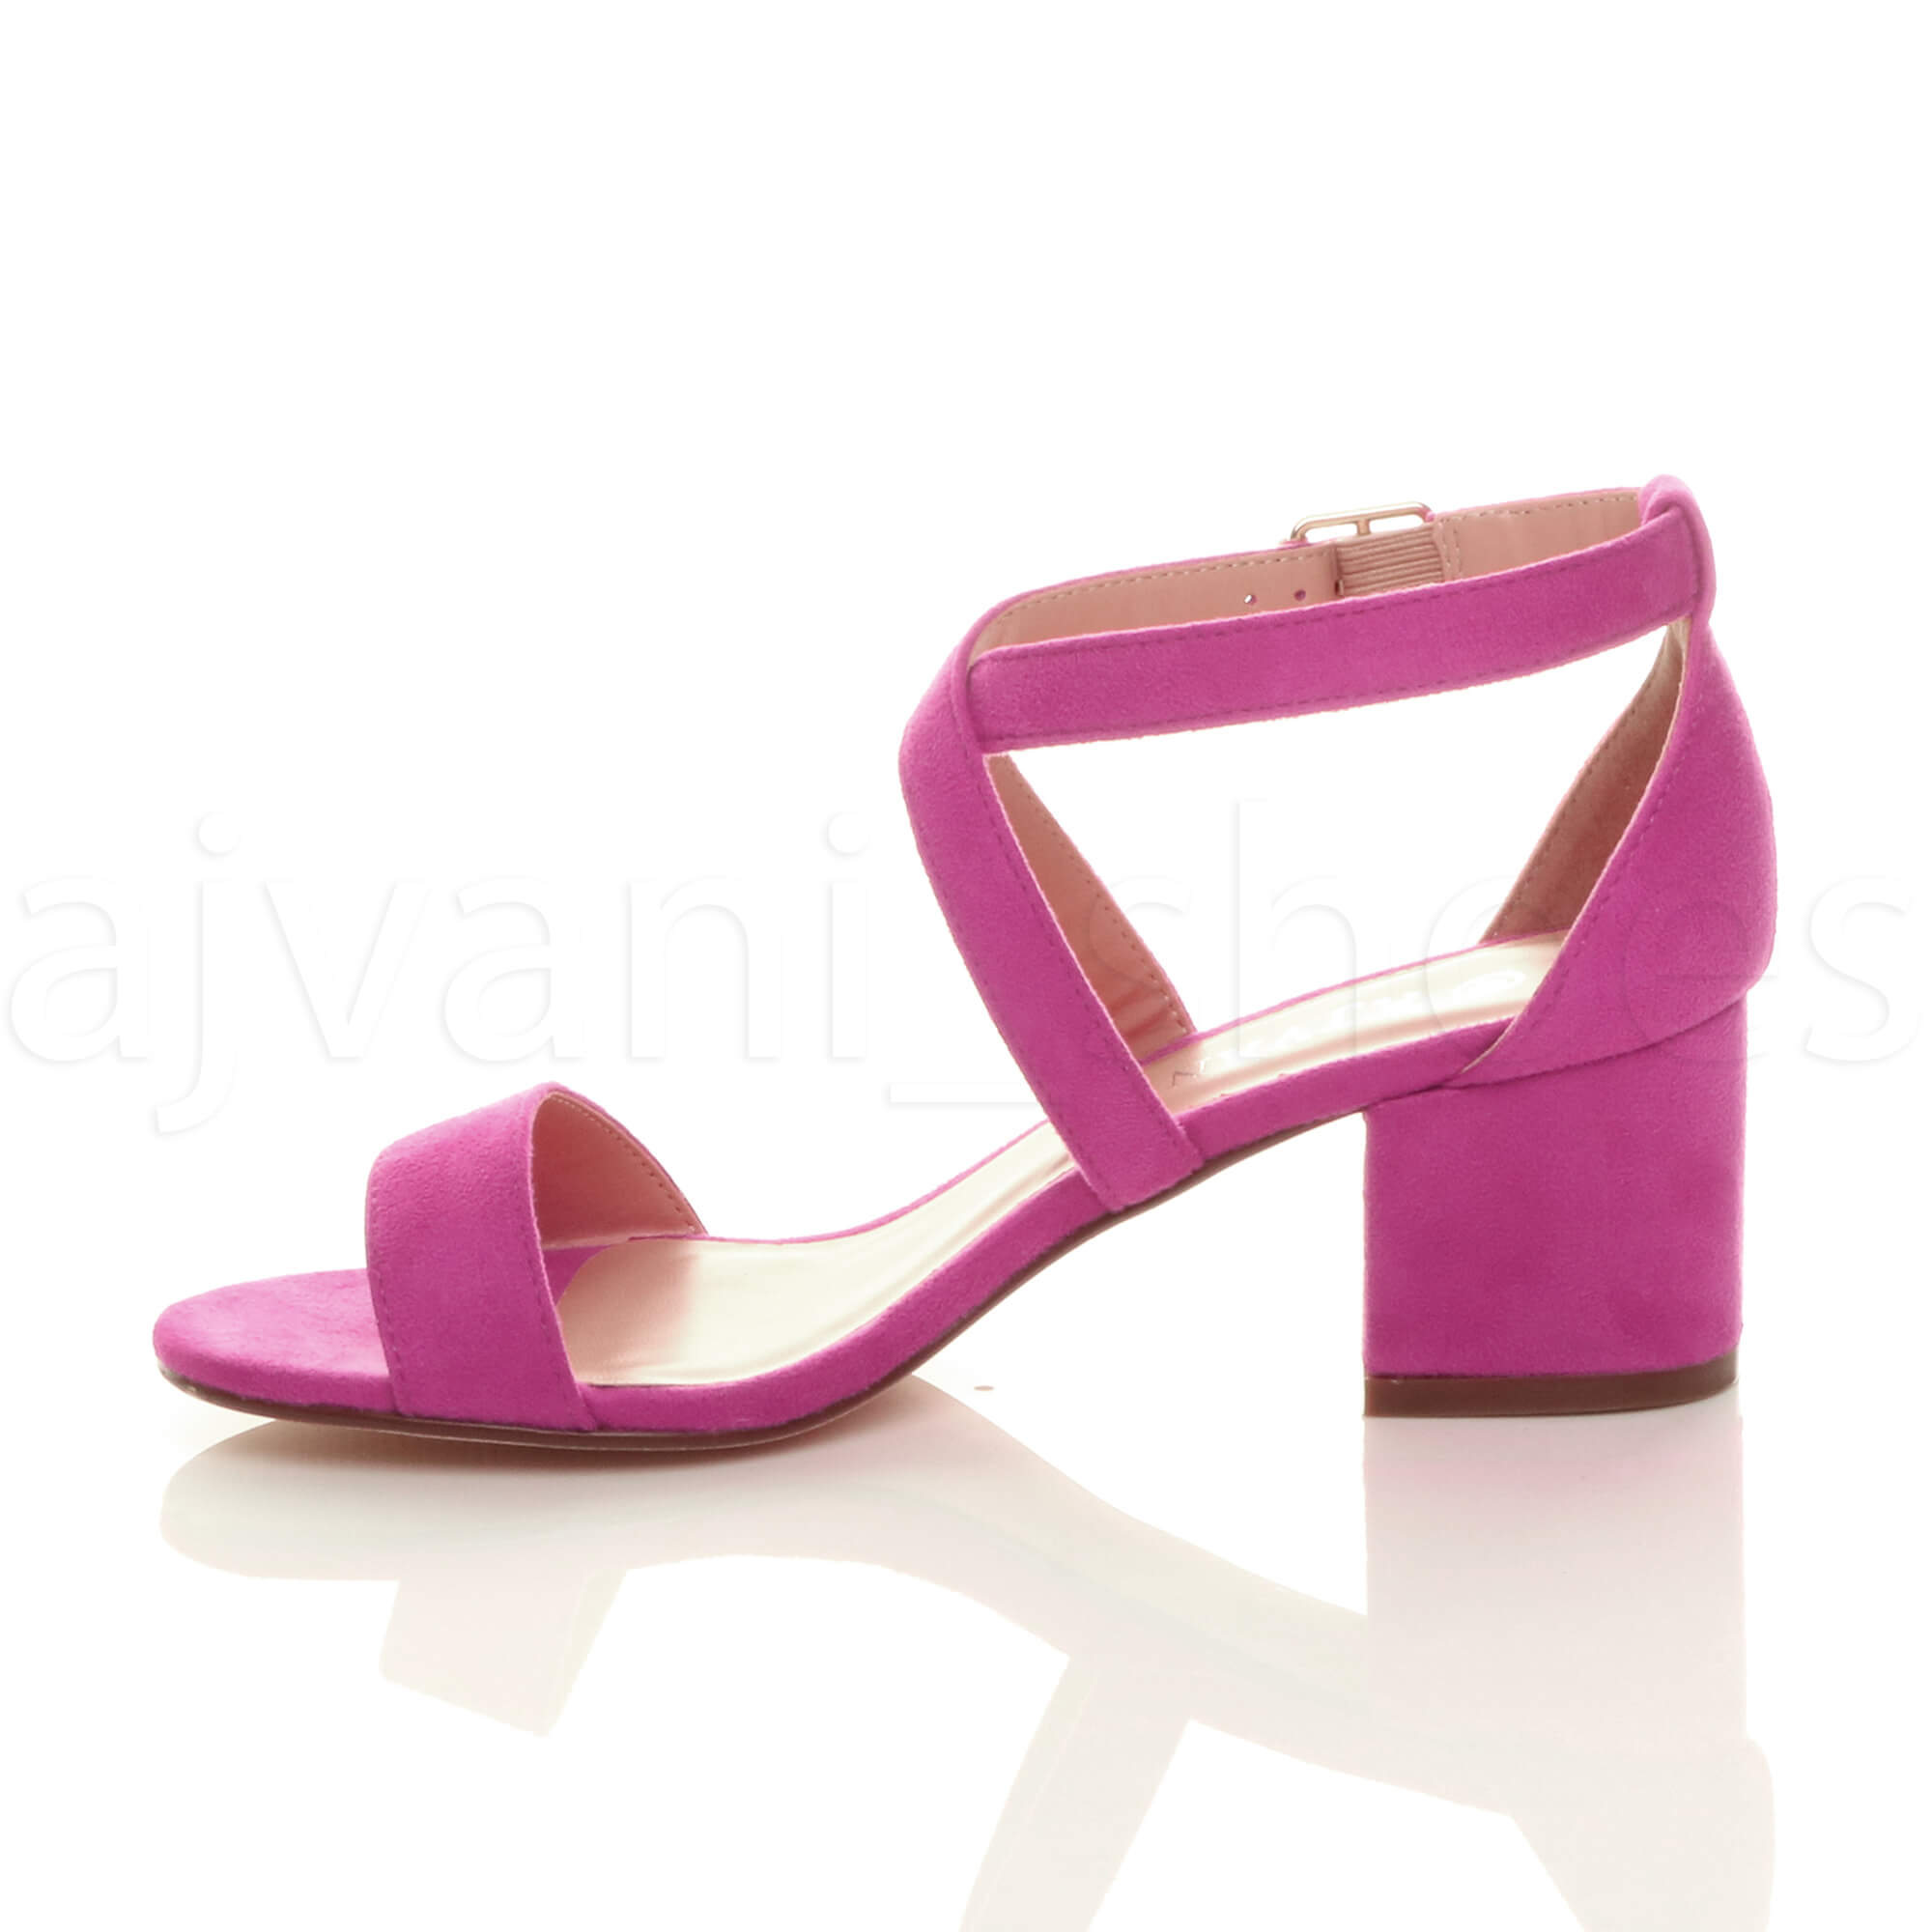 WOMENS-LADIES-MID-LOW-BLOCK-HEEL-CROSS-STRAPS-PARTY-STRAPPY-SANDALS-SHOES-SIZE thumbnail 23